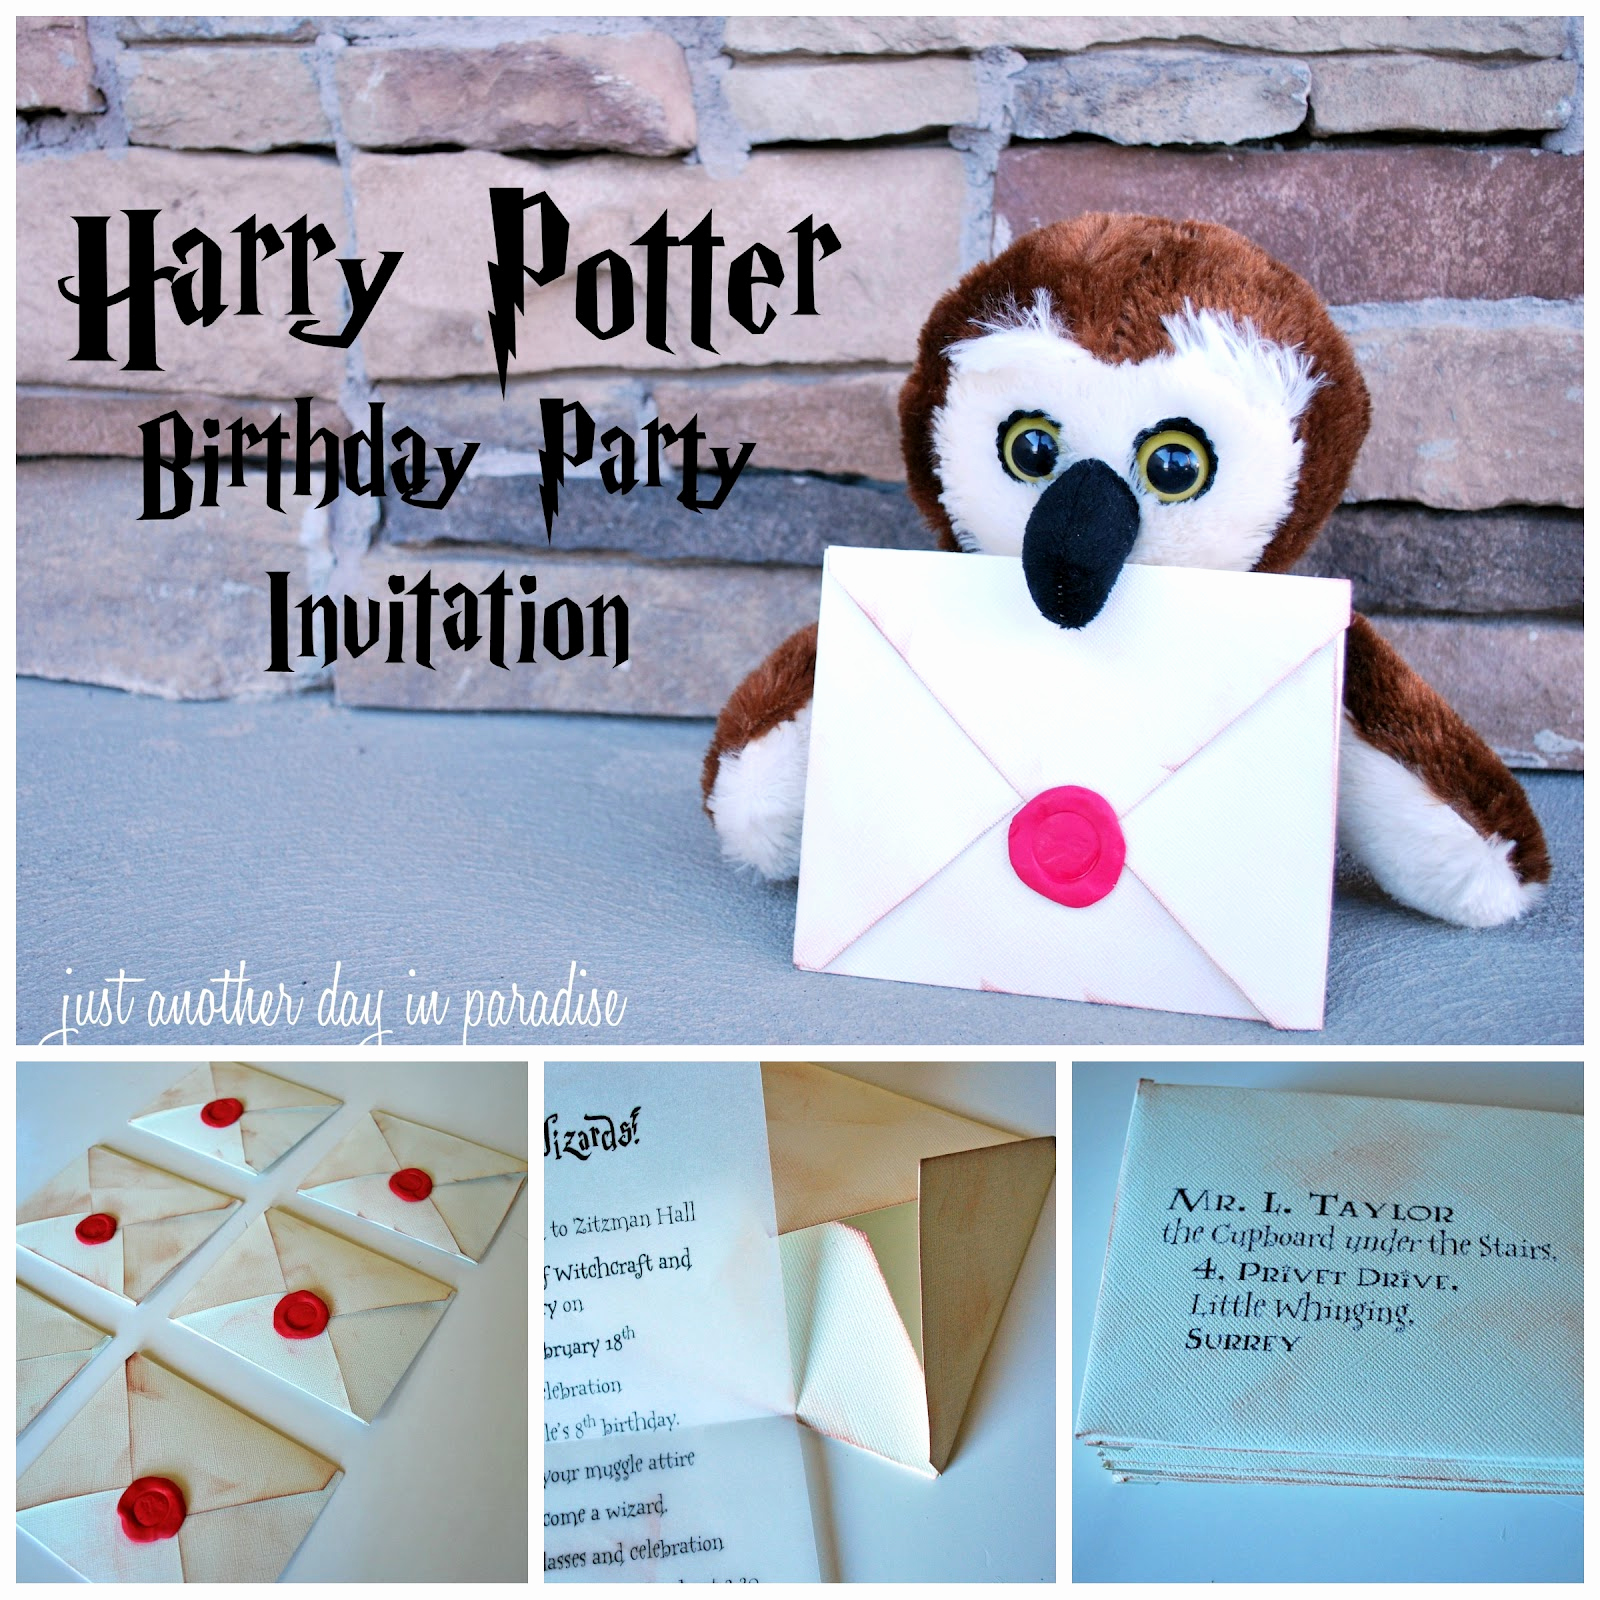 Harry Potter Invitation Ideas Luxury Larissa Another Day Harry Potter Party Invites Tutorial